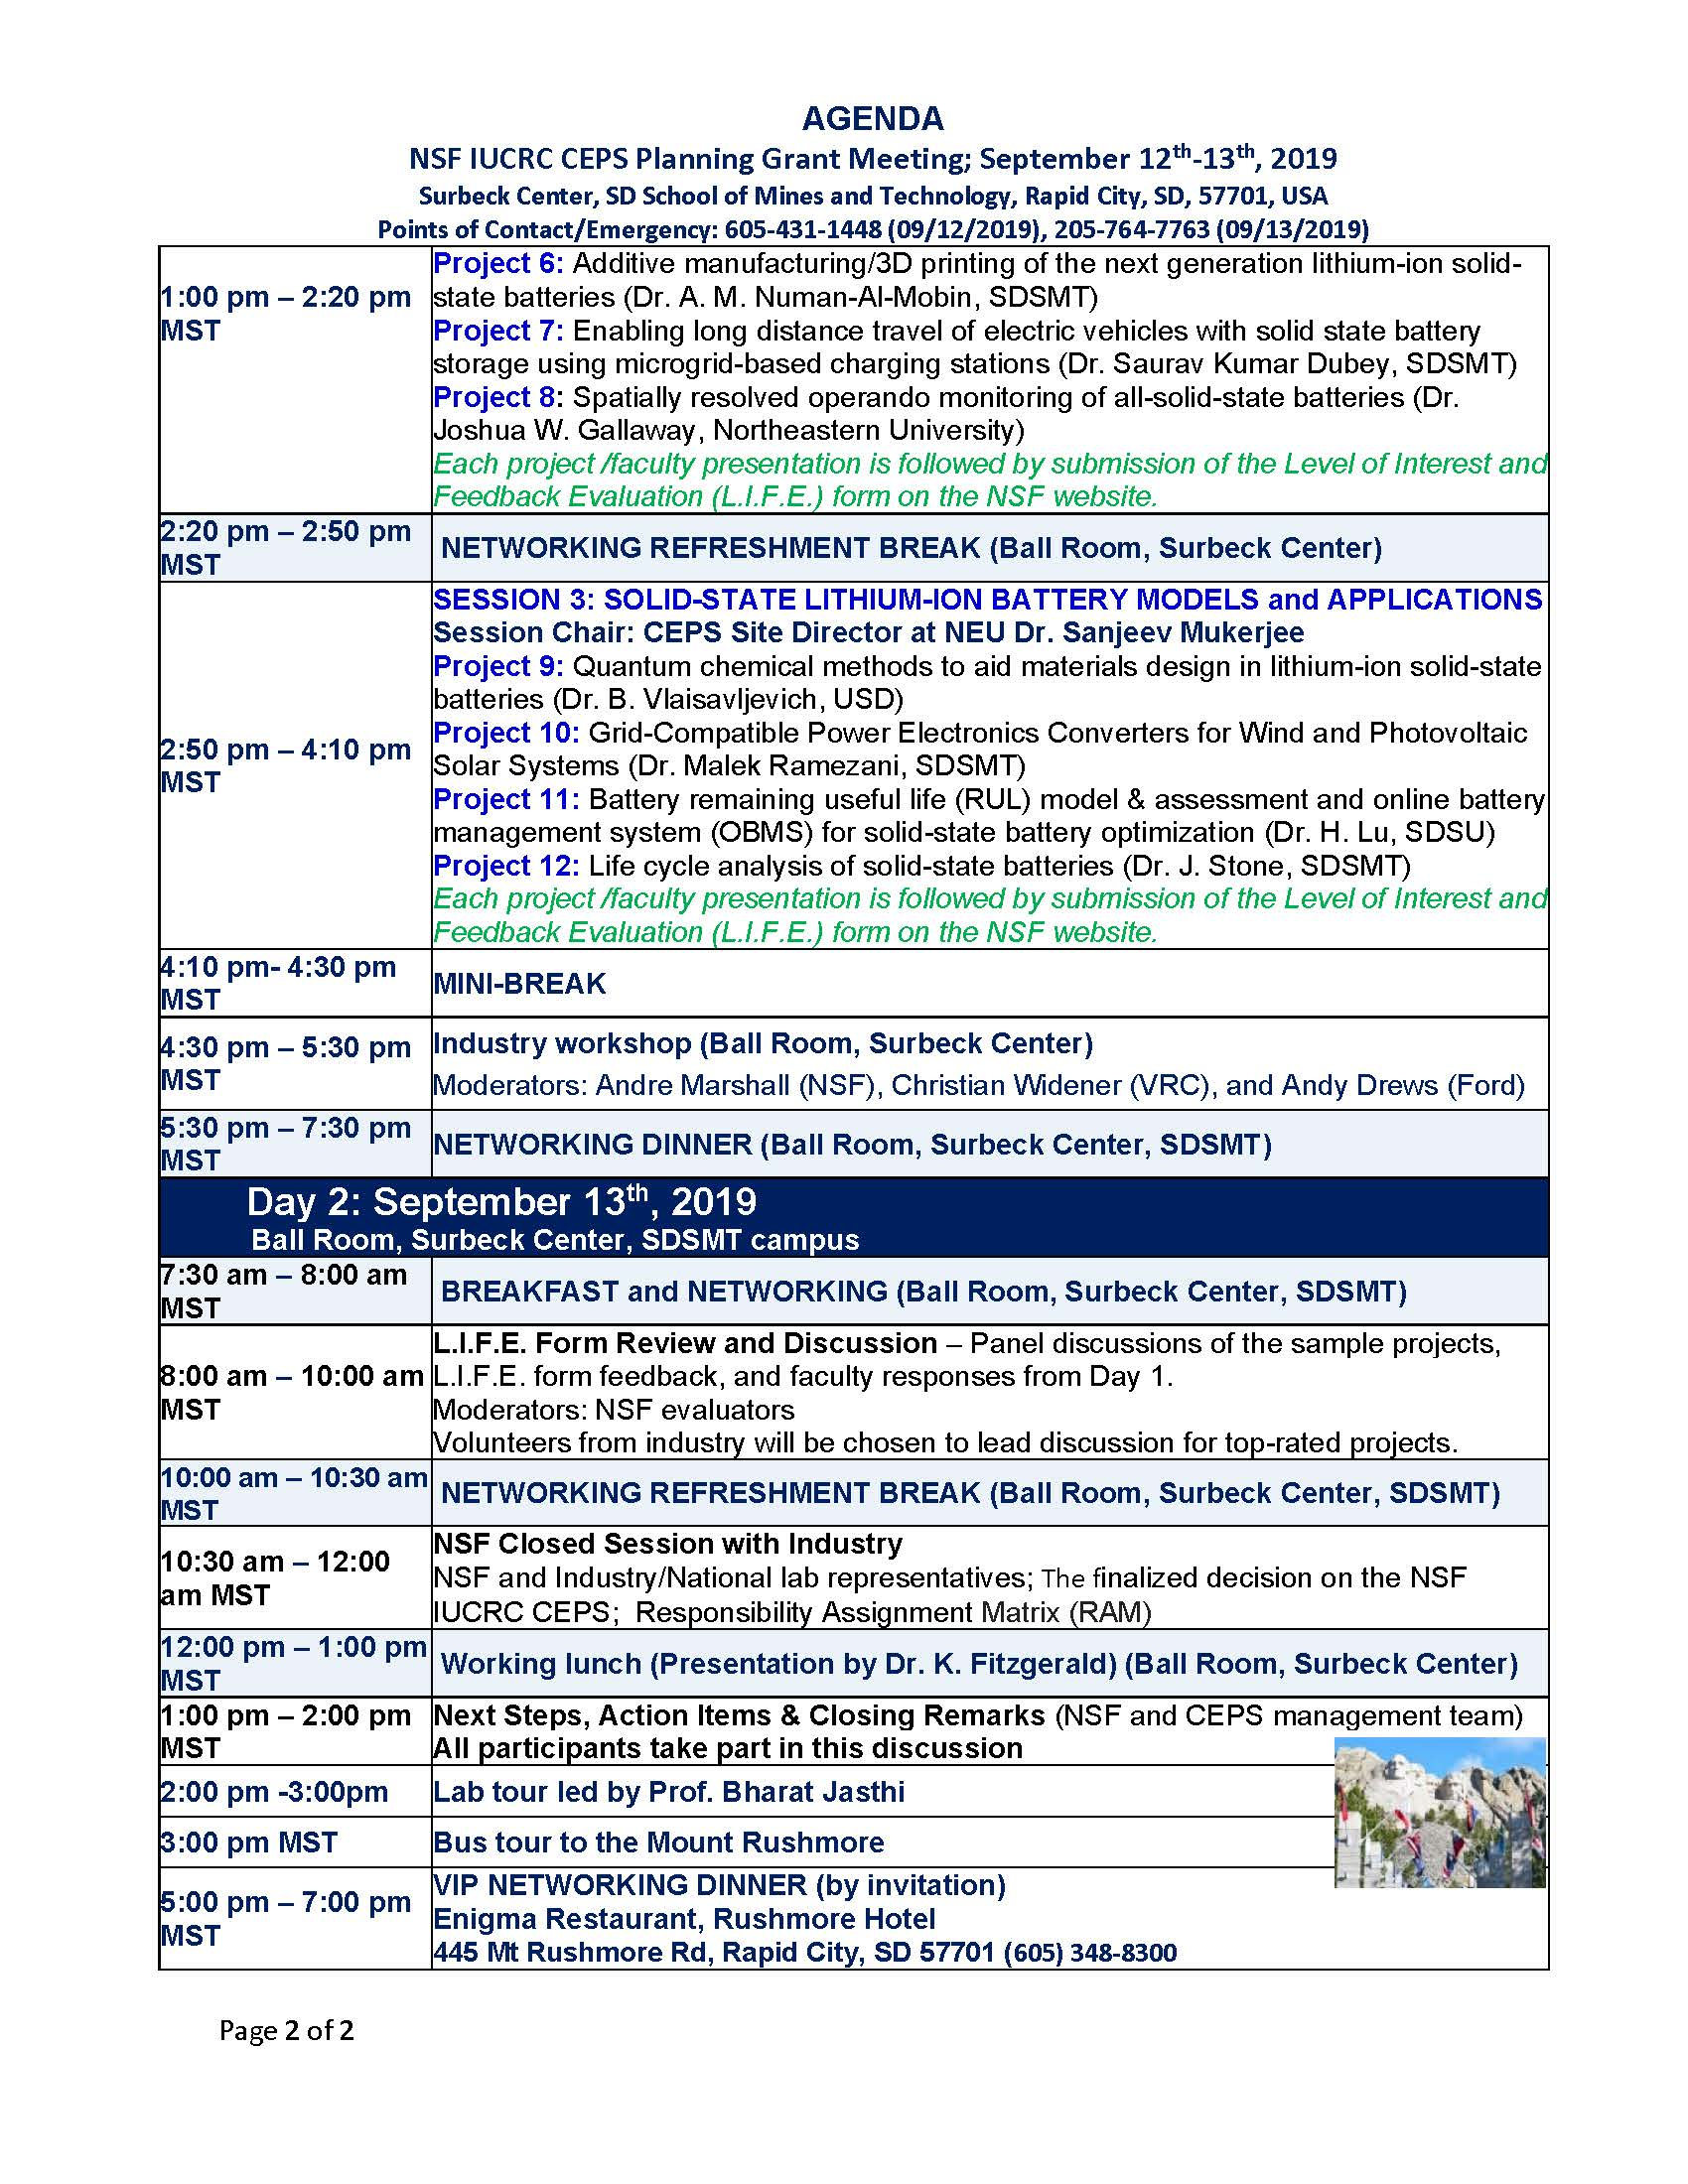 Planning grant meeting agenda- SEPTEMBER 12th-13th_Page_2.jpg